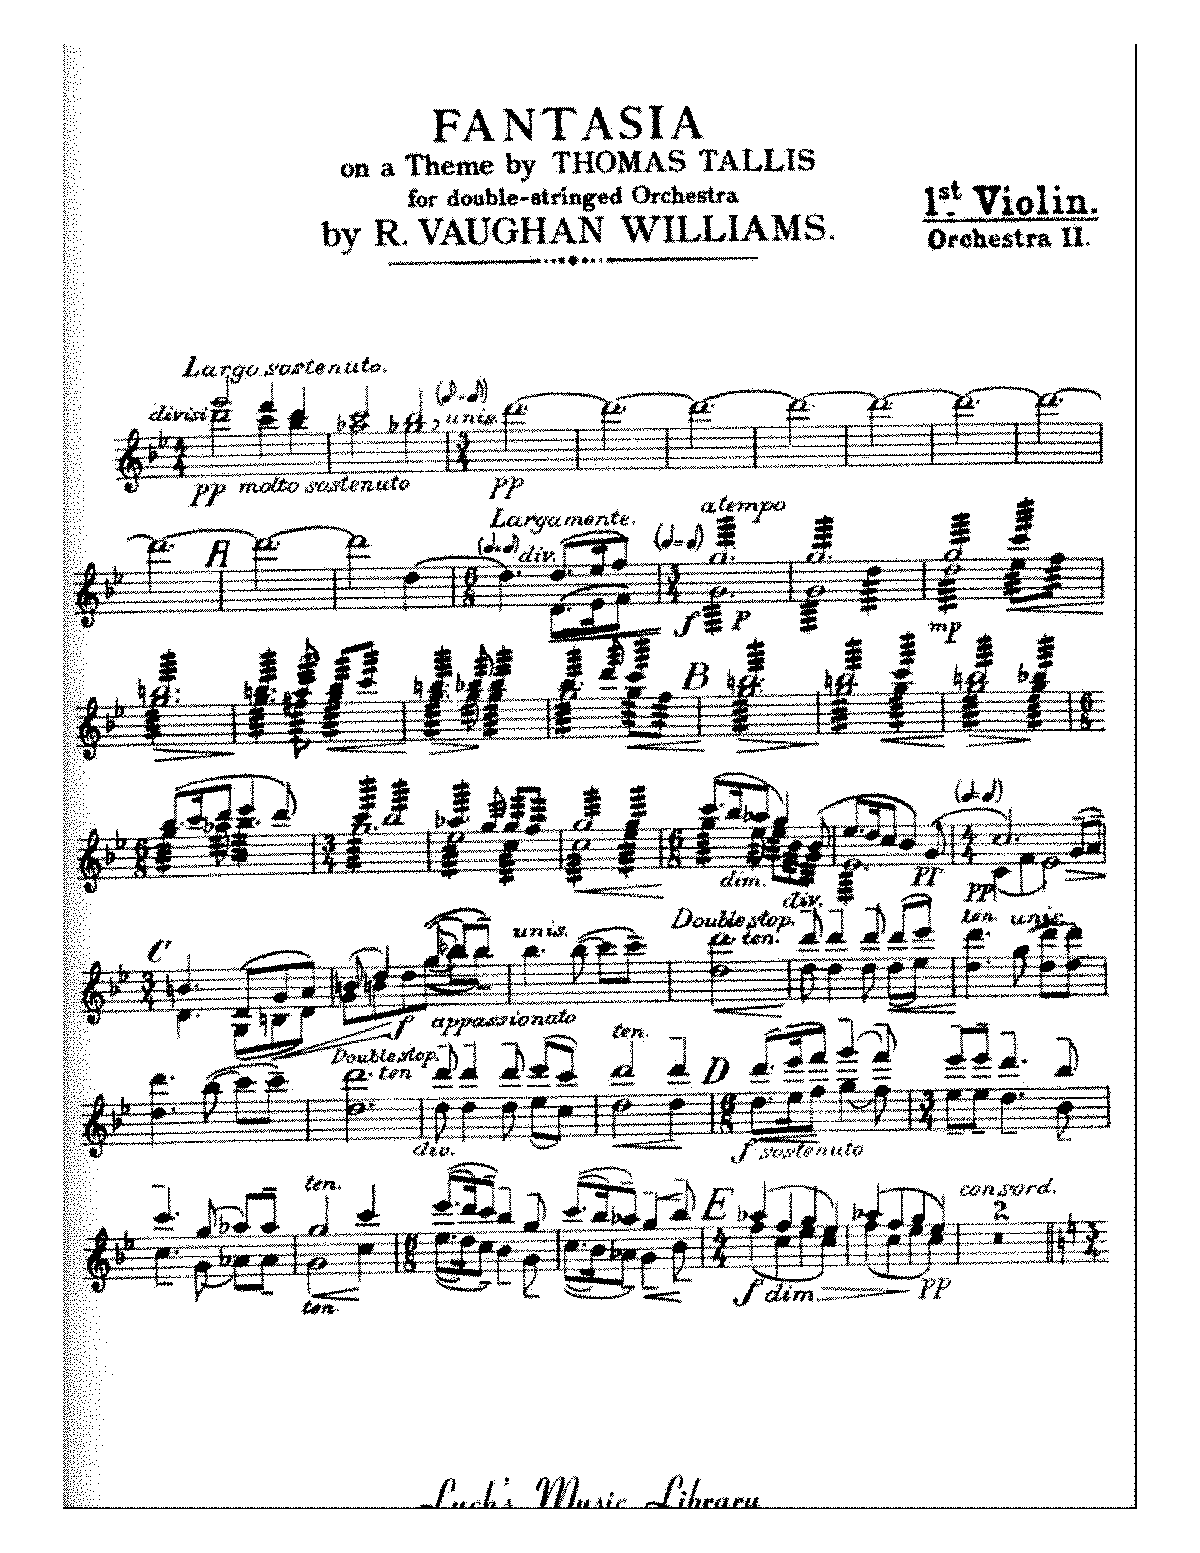 PMLP53497-vaughnwilliams-Fant O2 Violin1.pdf